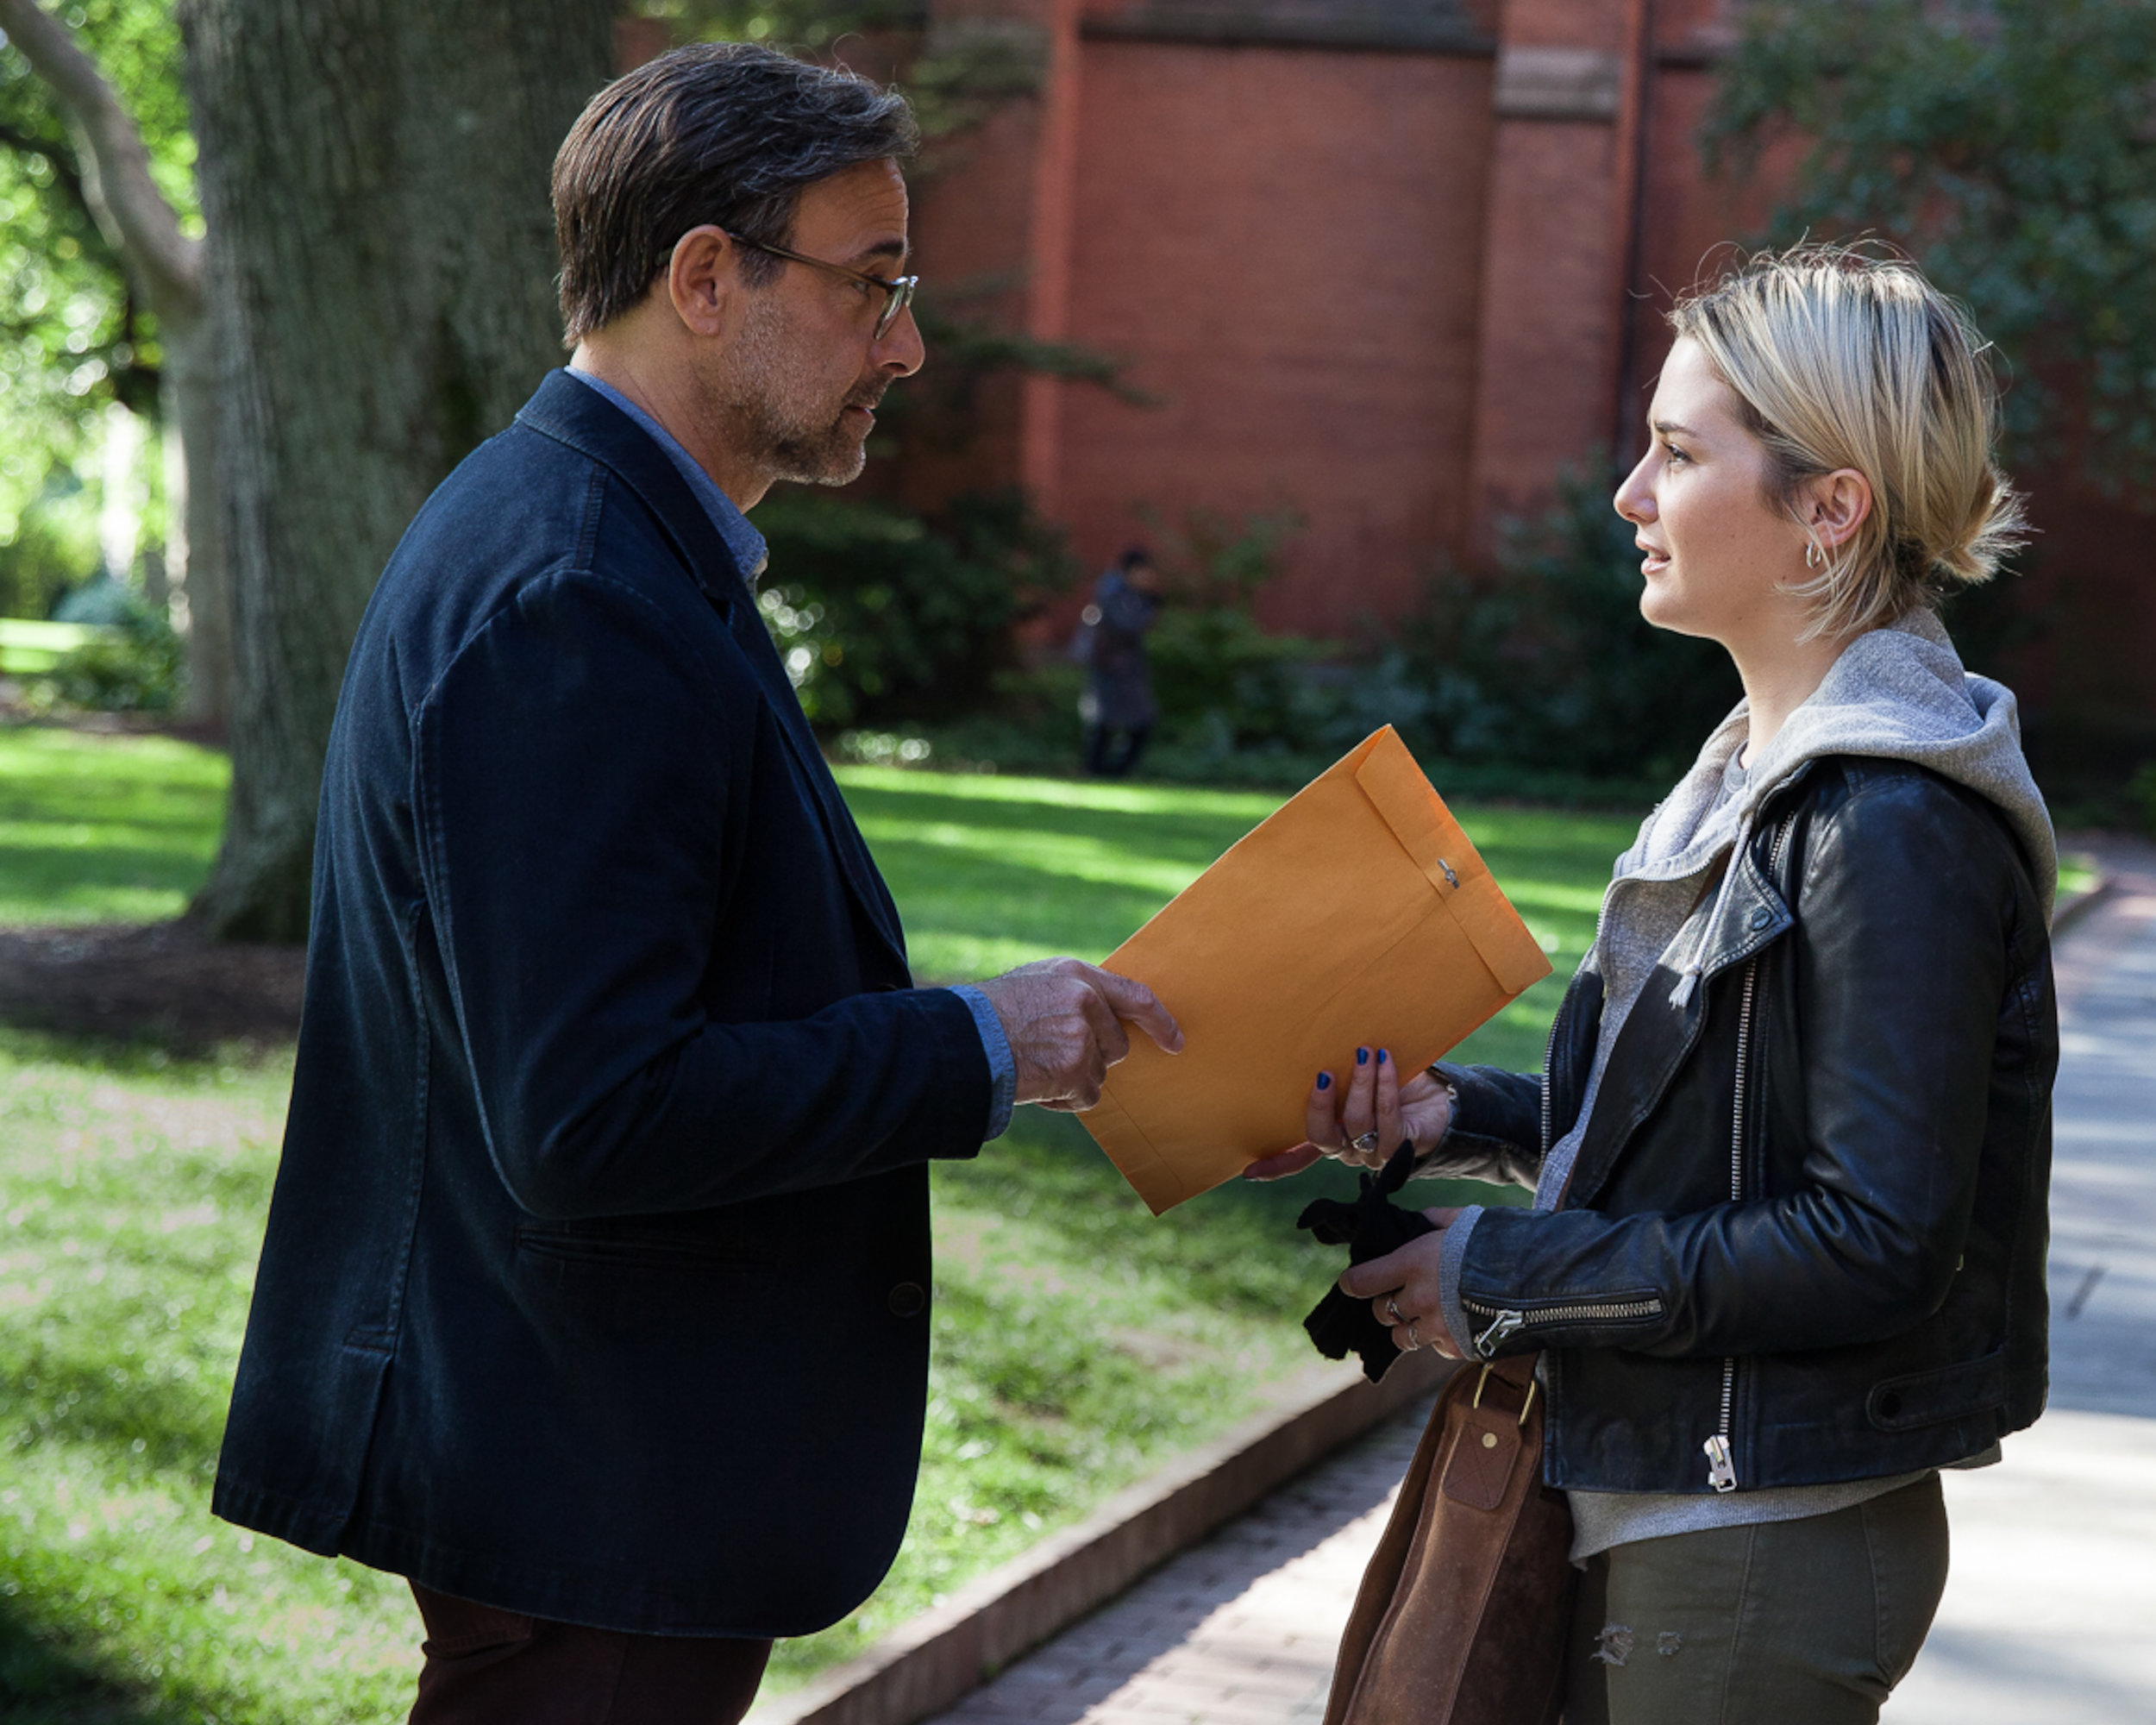 Stanley Tucci and Addison Timlin,in Submission, directed by Richard Levin